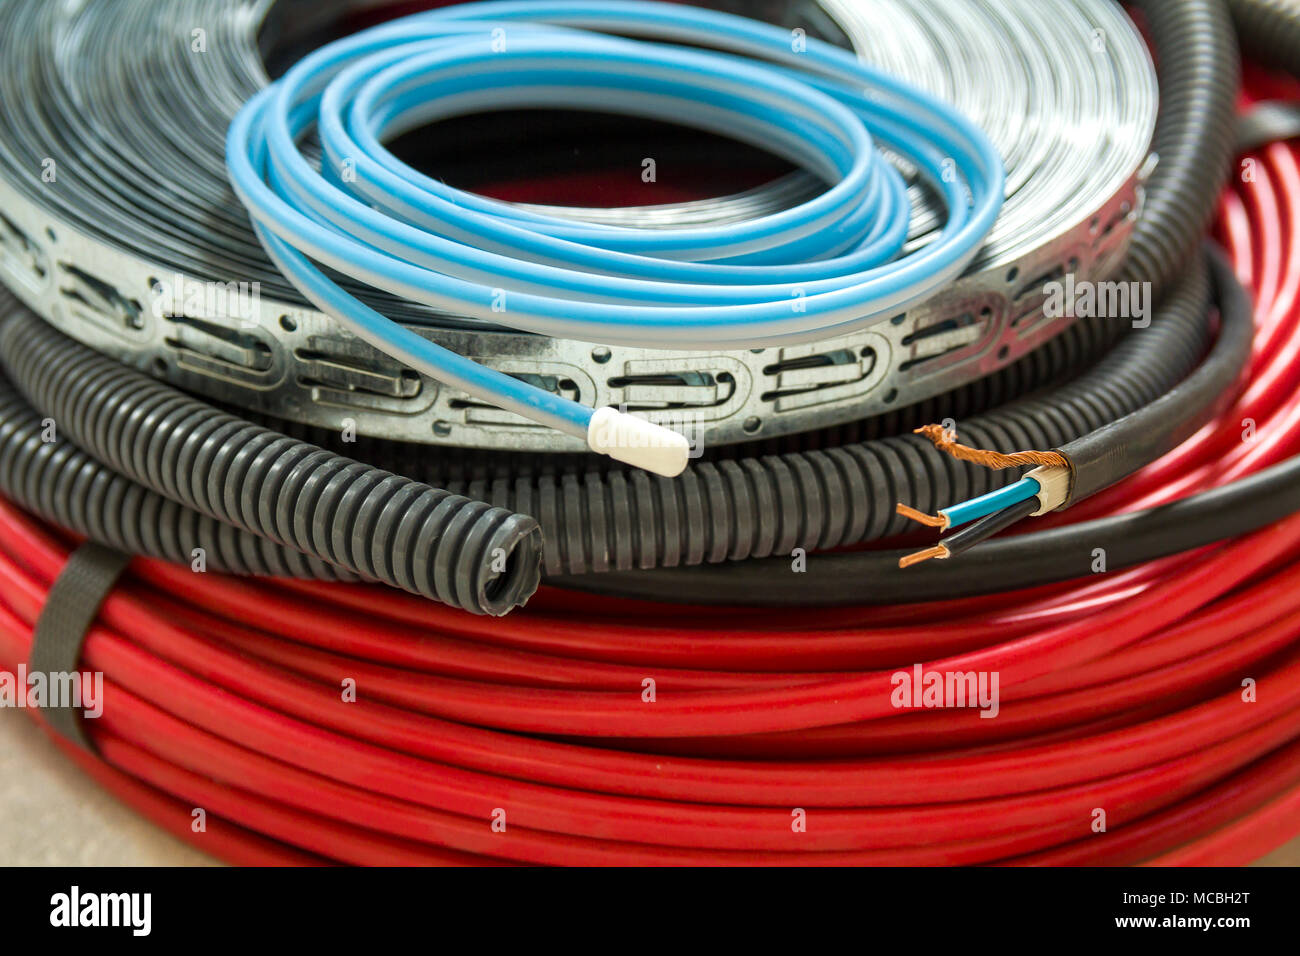 Heating Floor System Wires And Cables Renovation Construction Wiring New House Technology Concept Comfort